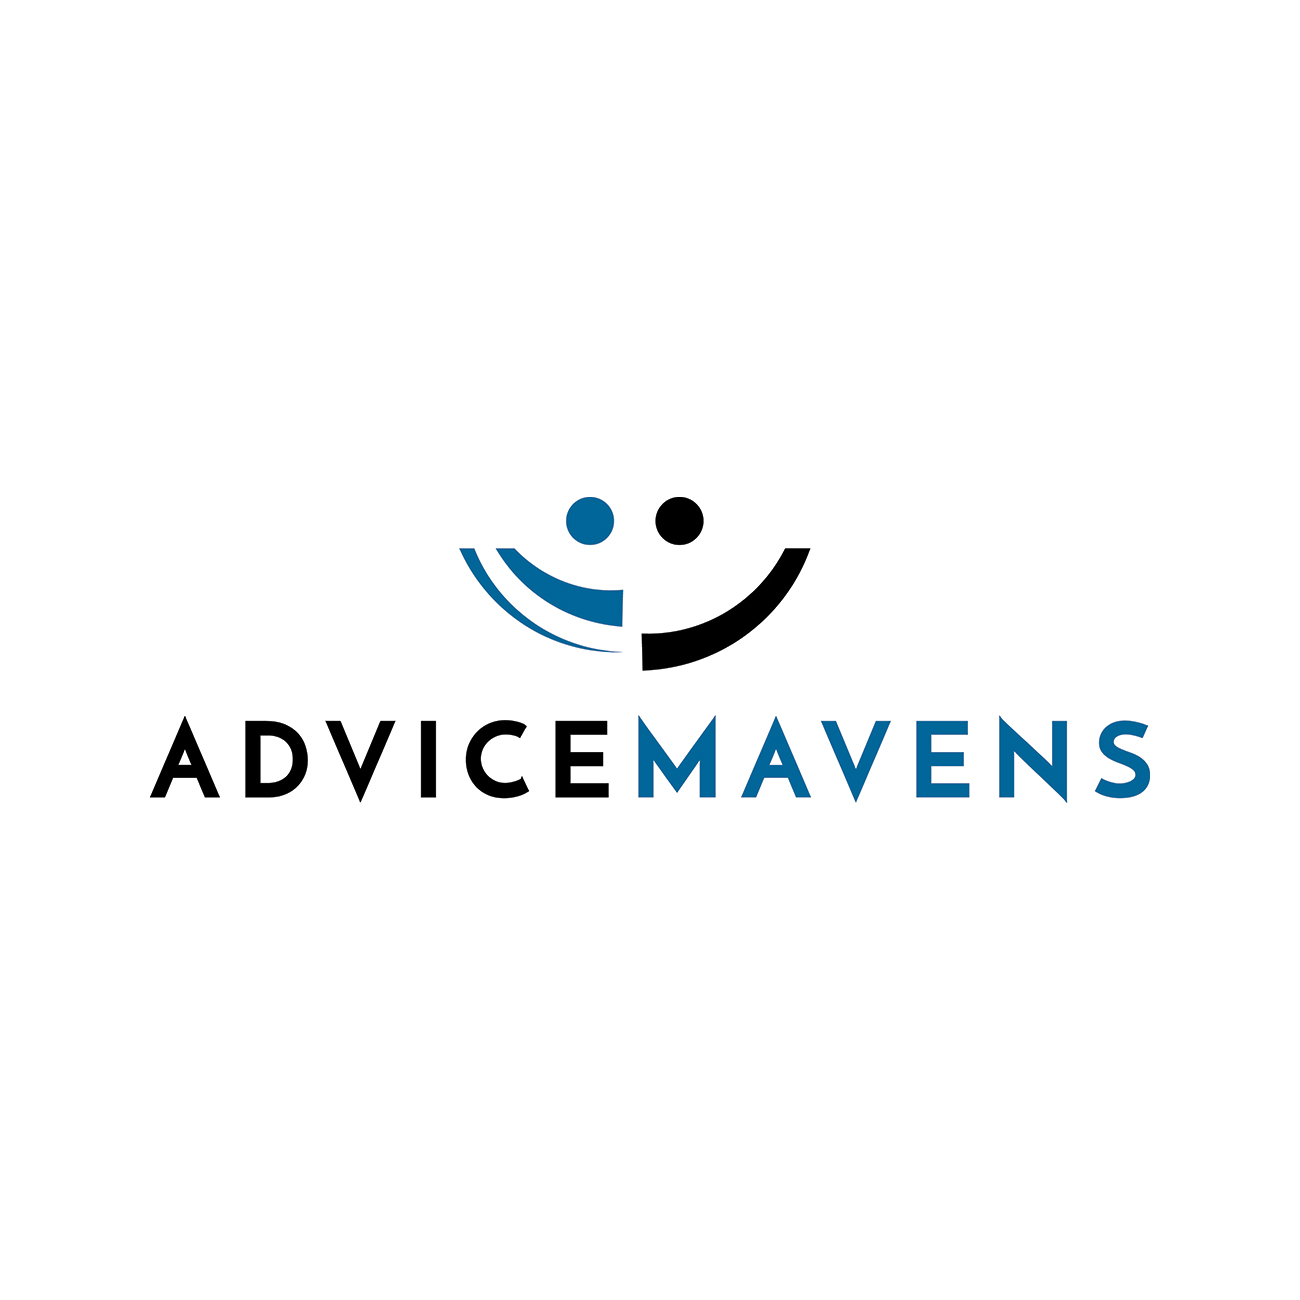 Advice Maven